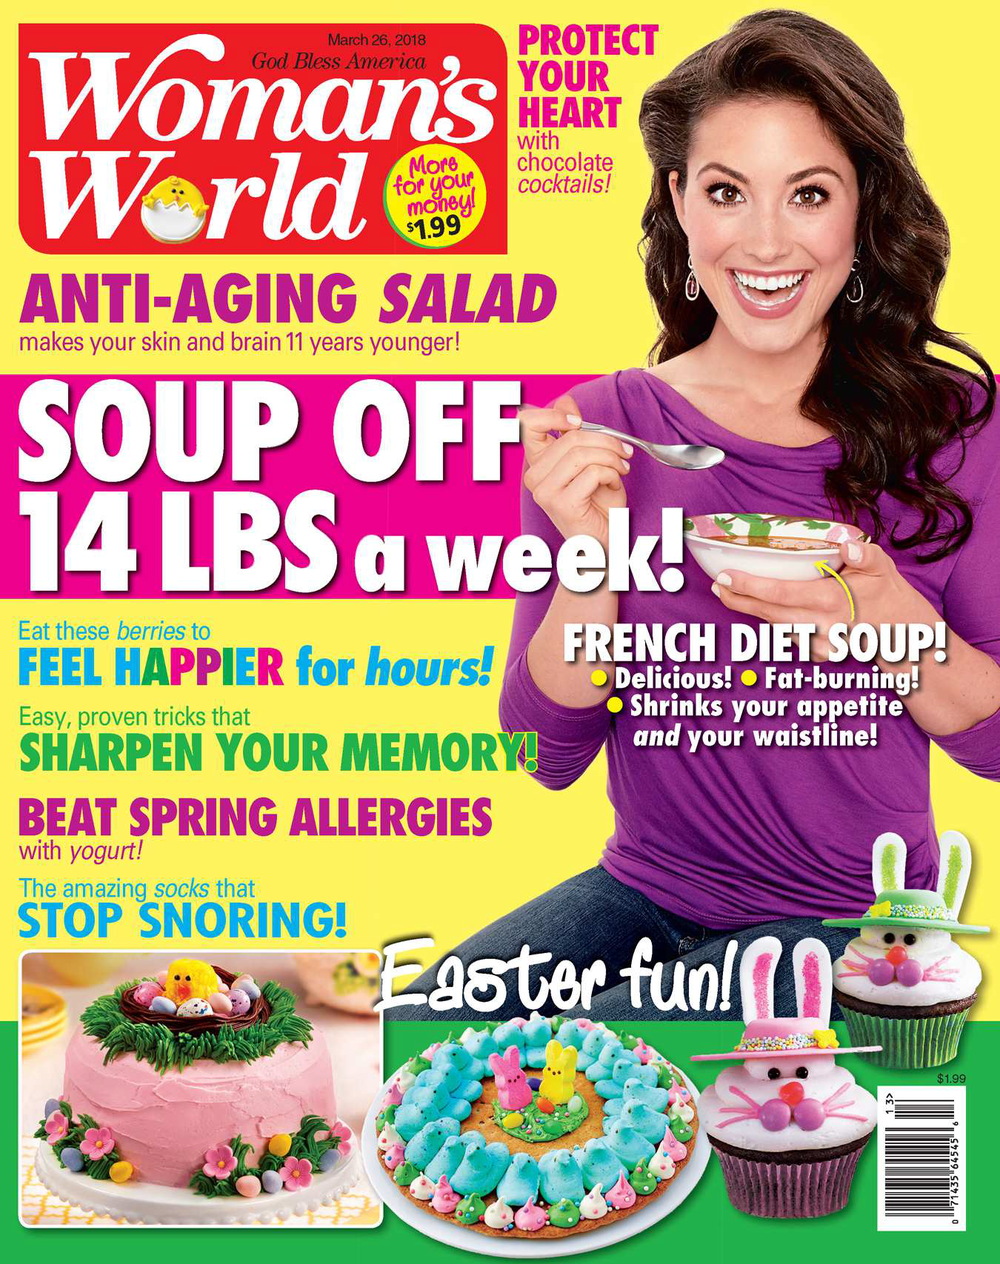 Denise Cerreta - Woman's World Magazine USA March 26 2018_Page_1.png